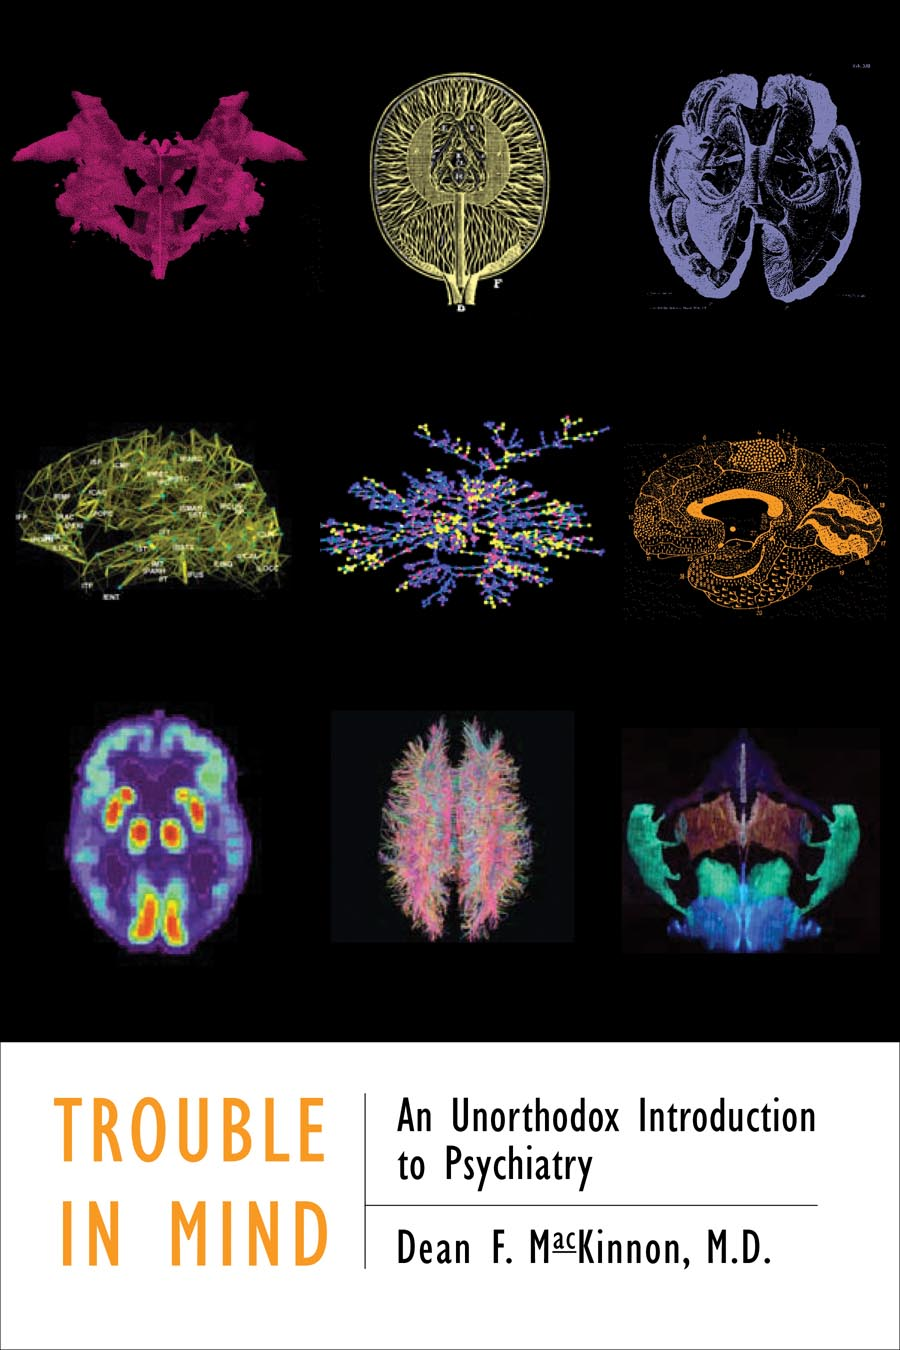 Trouble in Mind – An Unorthodox Introduction to Psychiatry